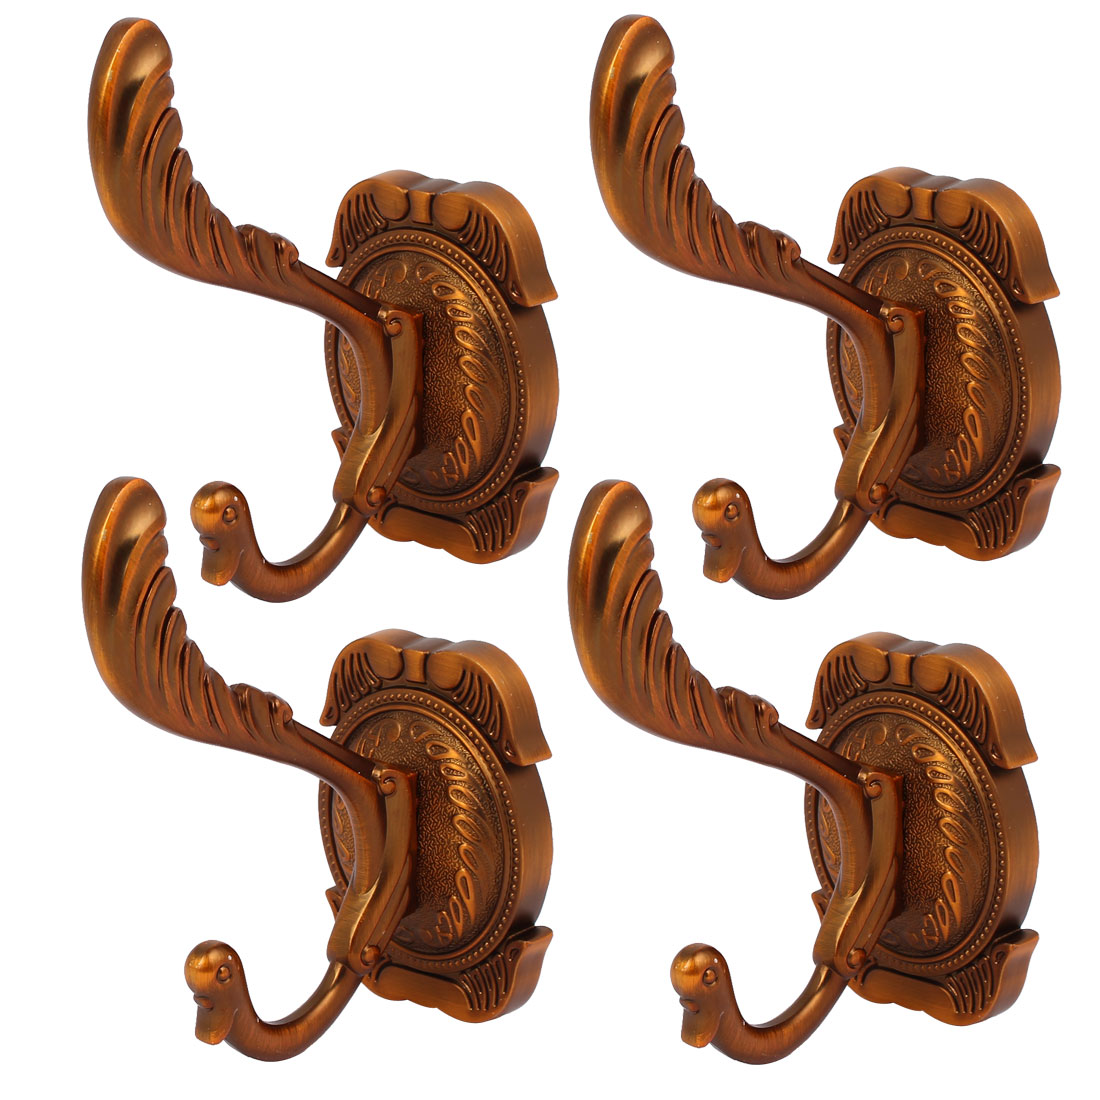 75mm x 53mm Square Base Coat Scarf Bag Hanger Holder Wall Hook Brown 4pcs